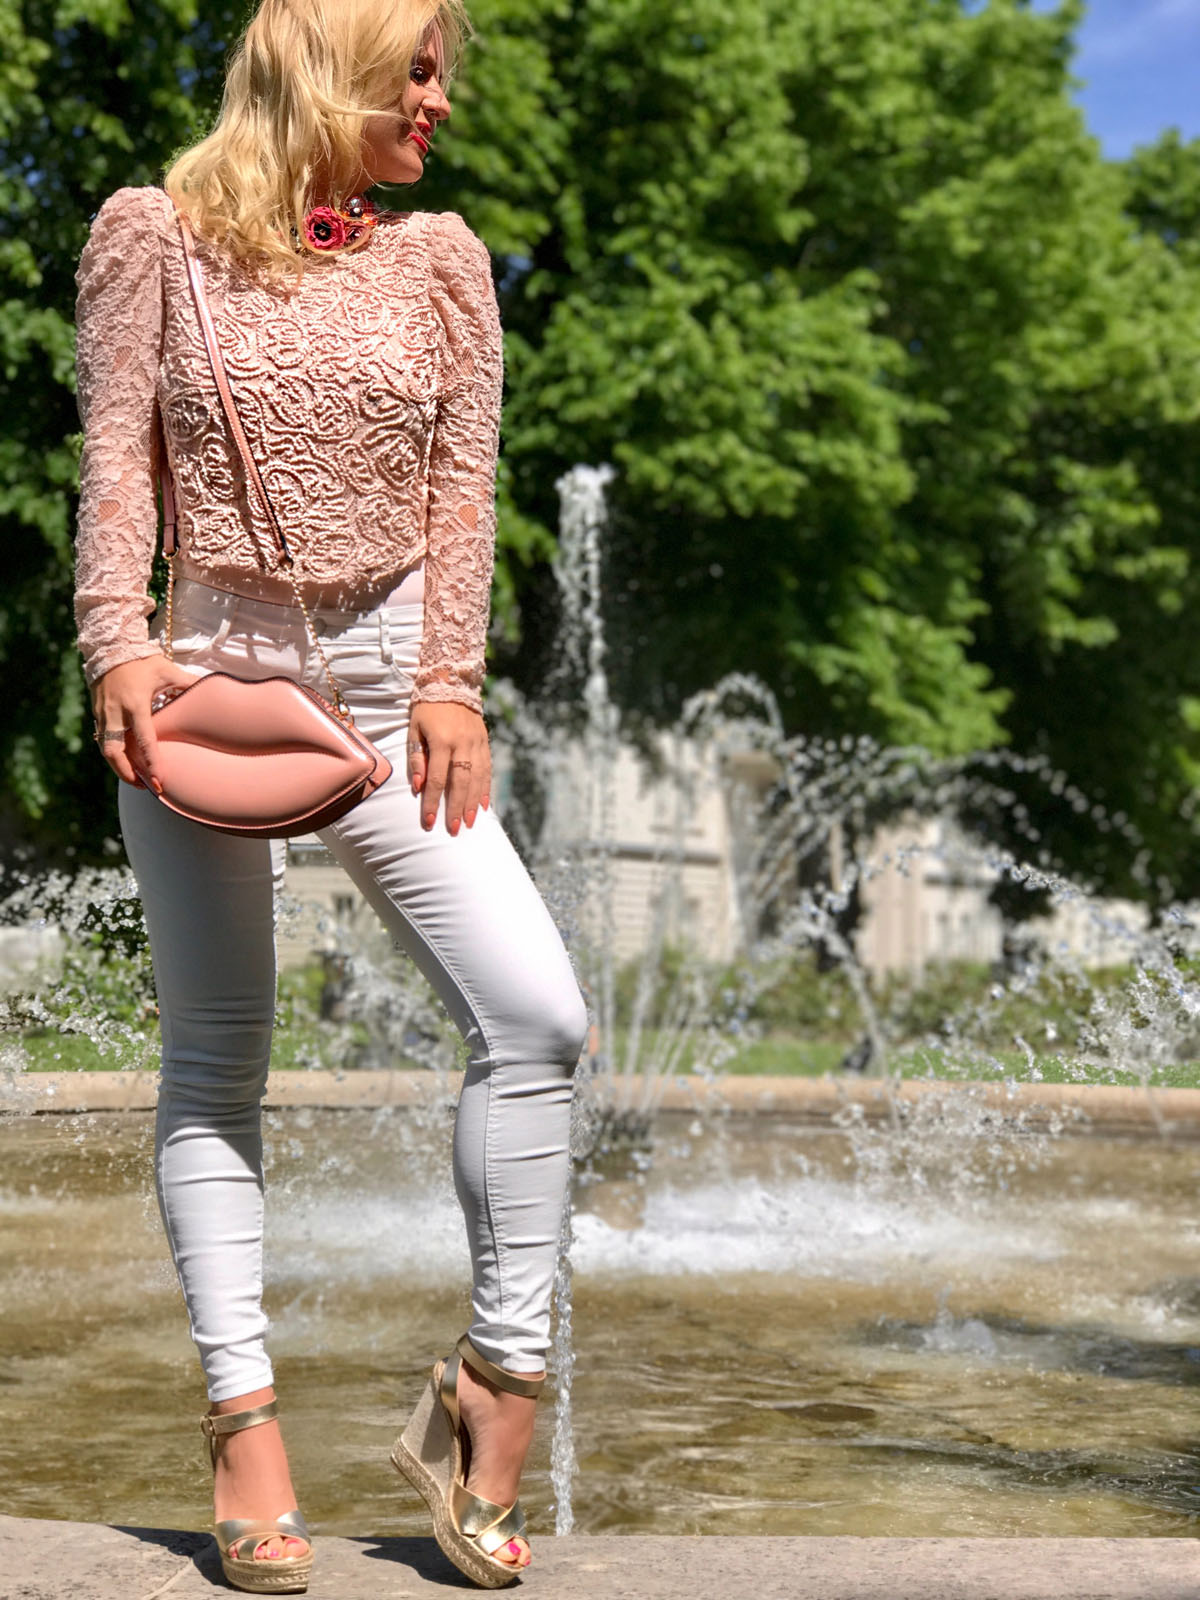 white-jeans-outfit-weisse-jeans-outfit-pastel-lace-shirt